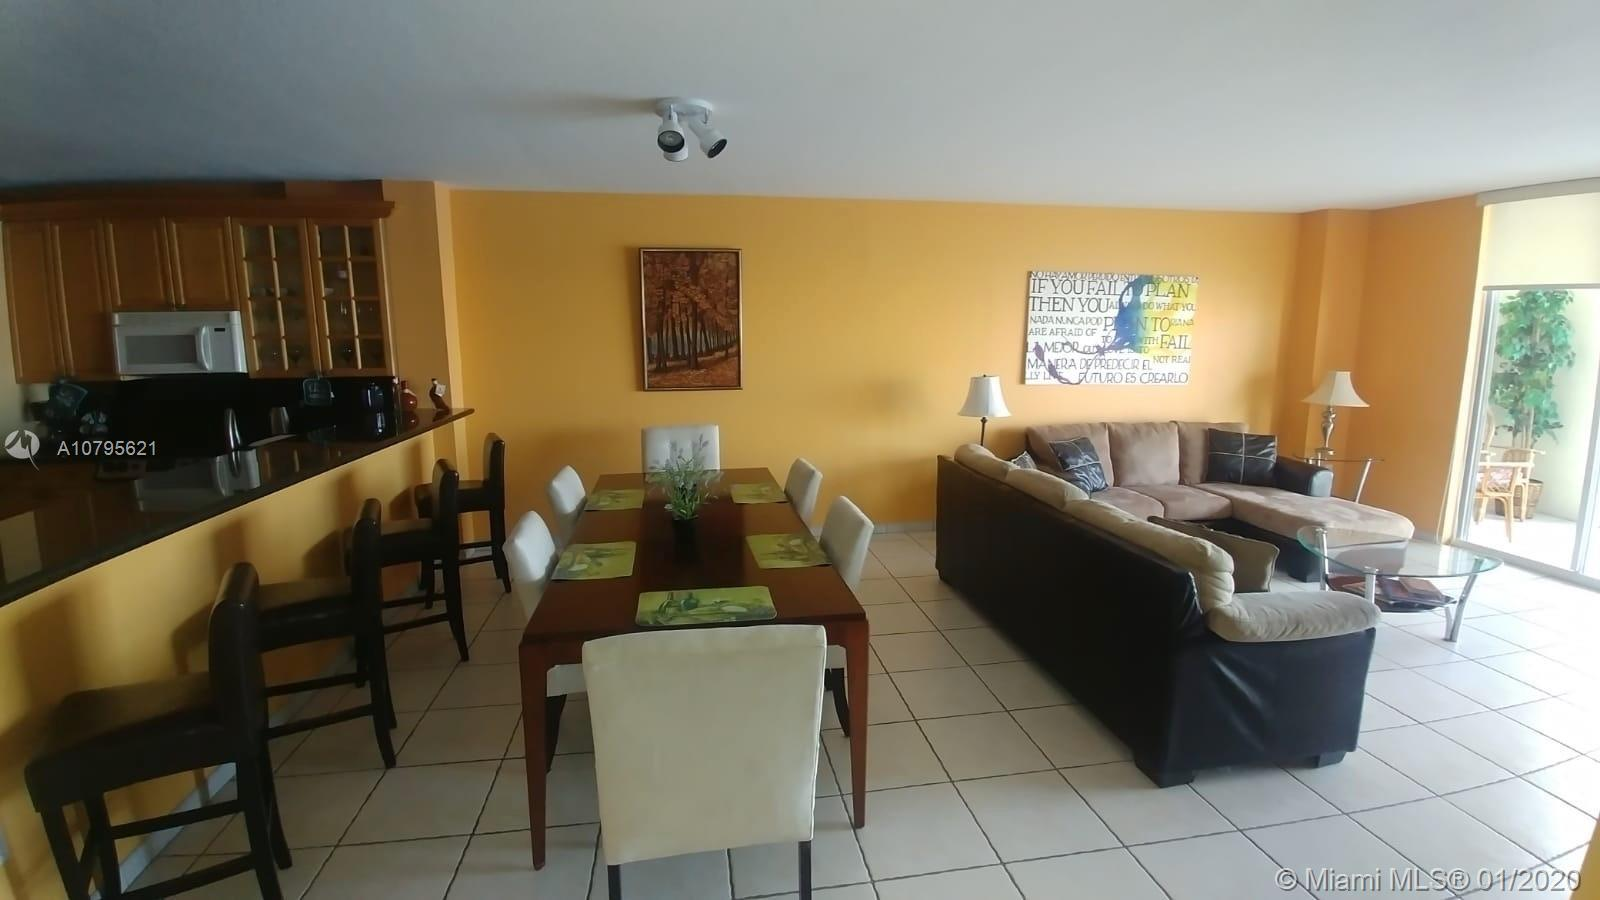 Beautiful apartment, central located. can be rented short term.